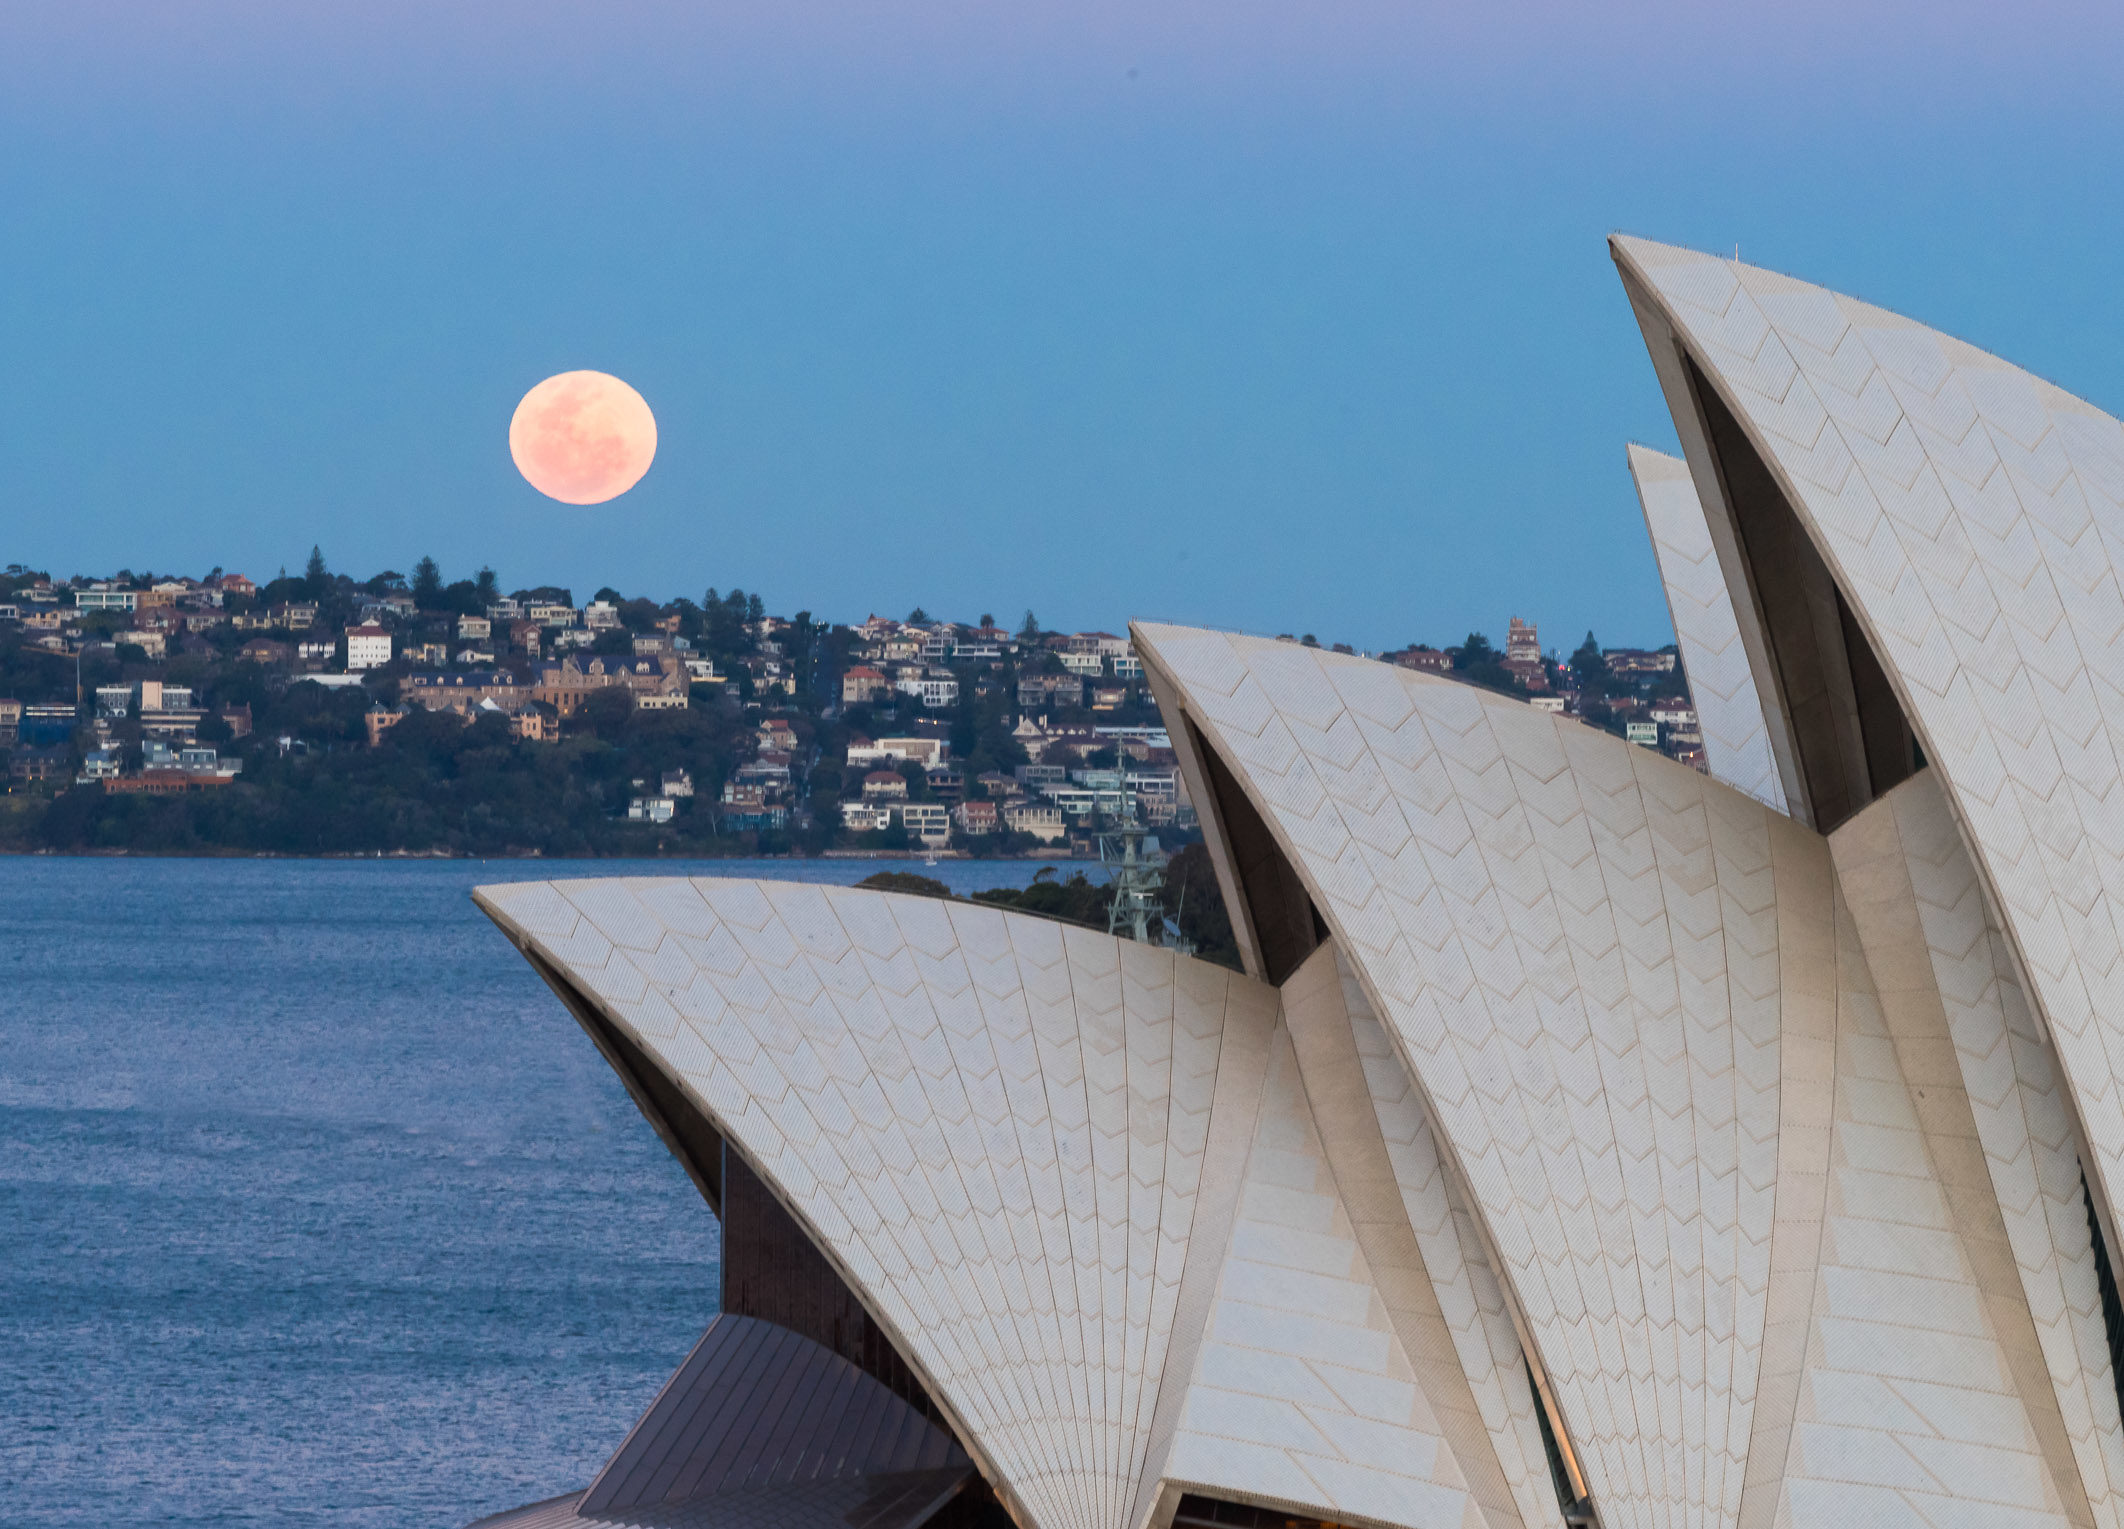 Moonrise Over the Opera House, Sydney, Australia